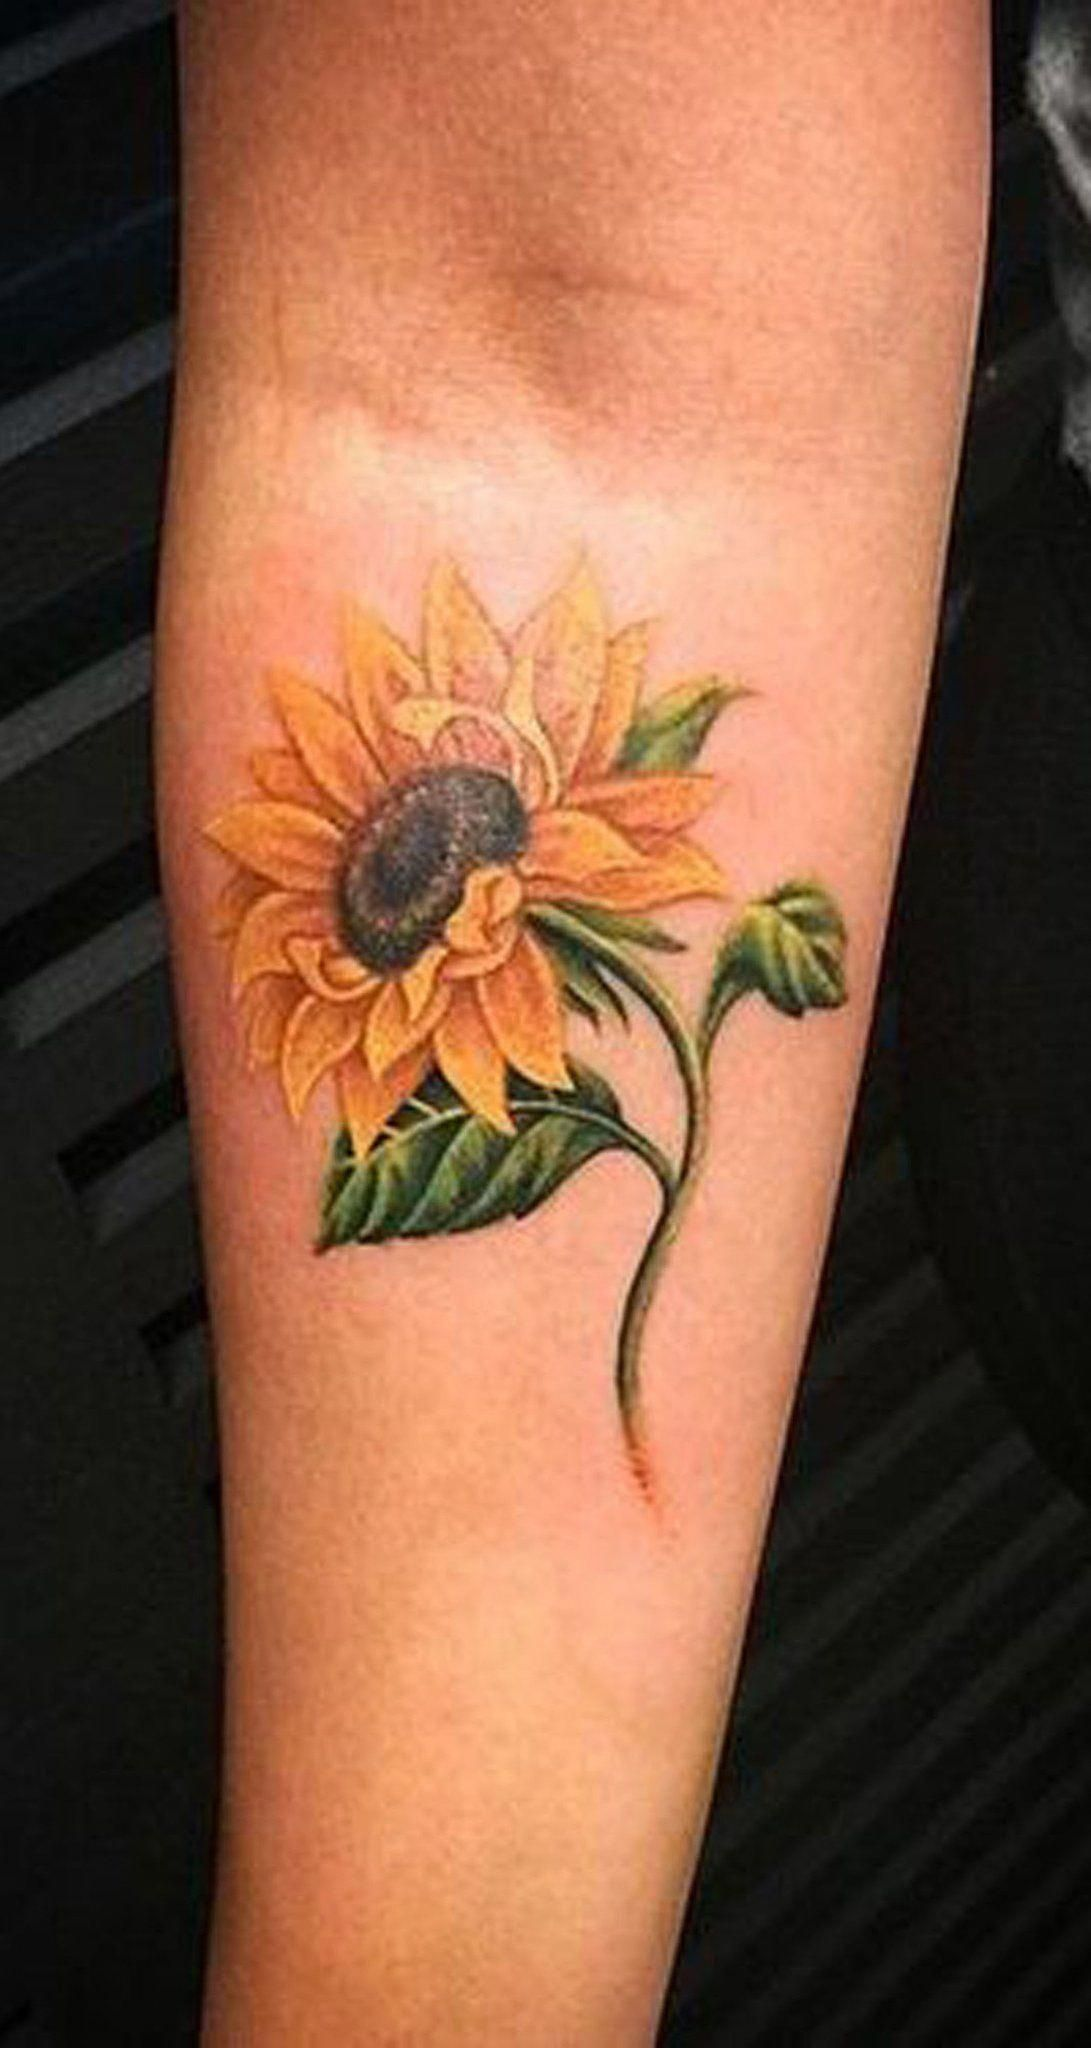 Small Colorful Sunflower Forearm Tattoo ideas for Women